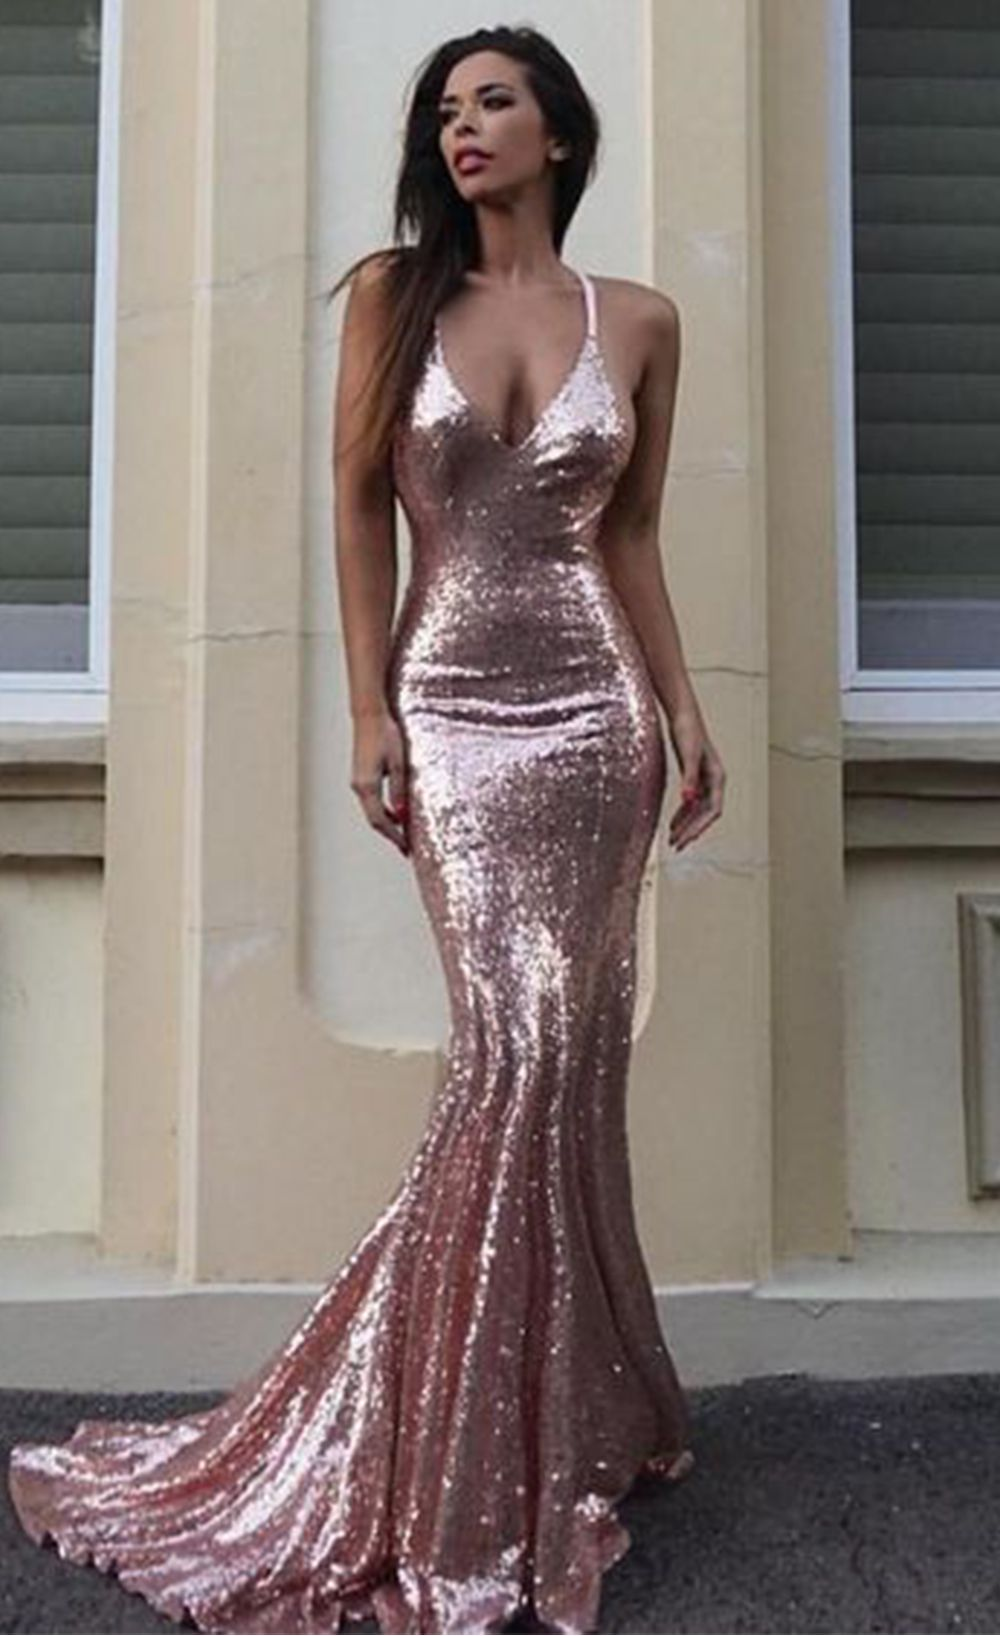 3c05d1e6b9d  89.99 Sexy Halter V-neck Party Sequin Maxi Dress